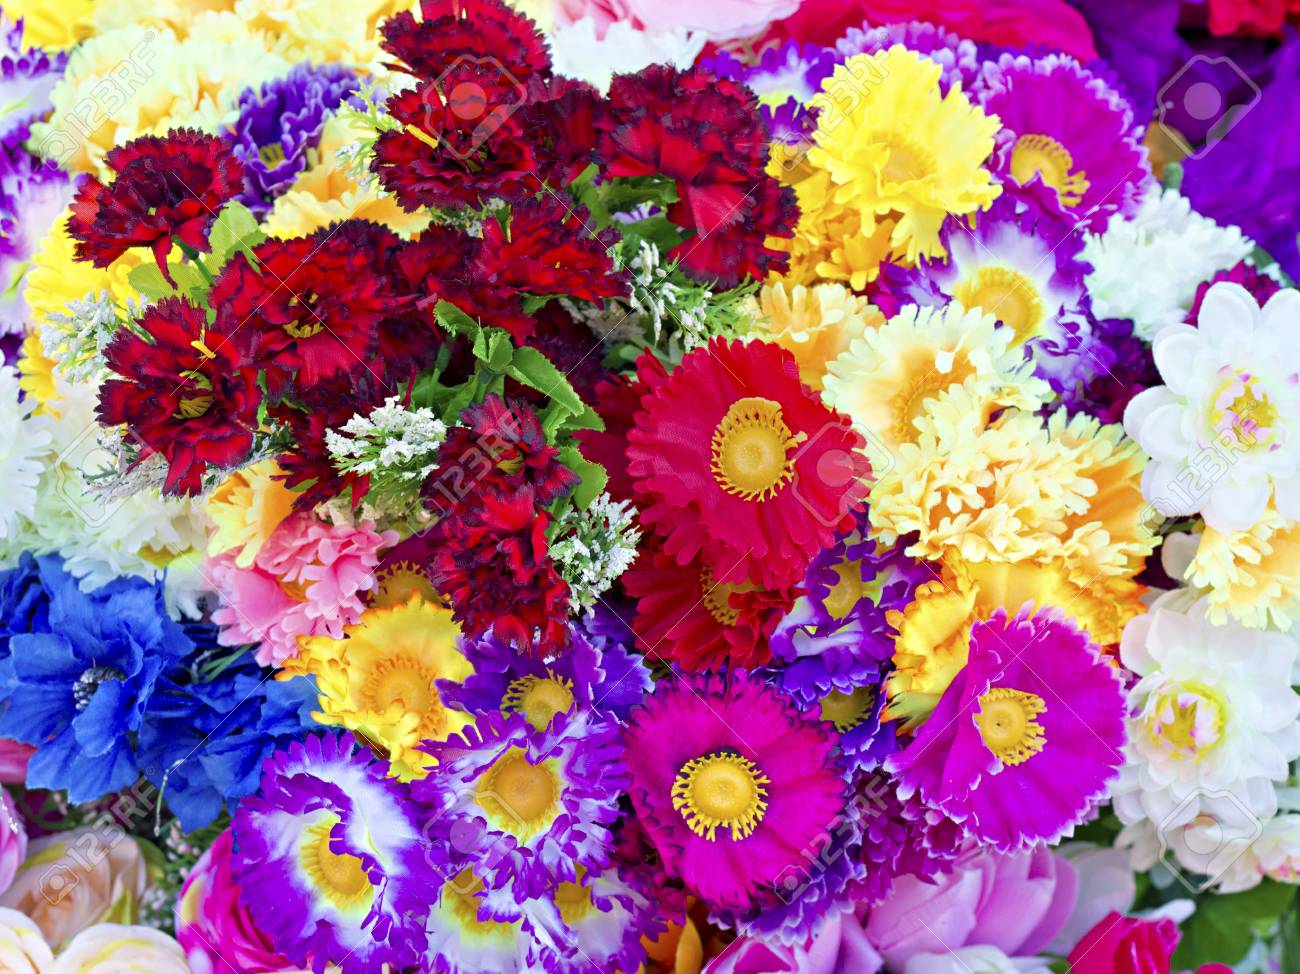 background of colorful artificial flowers Stock Photo - 13159713